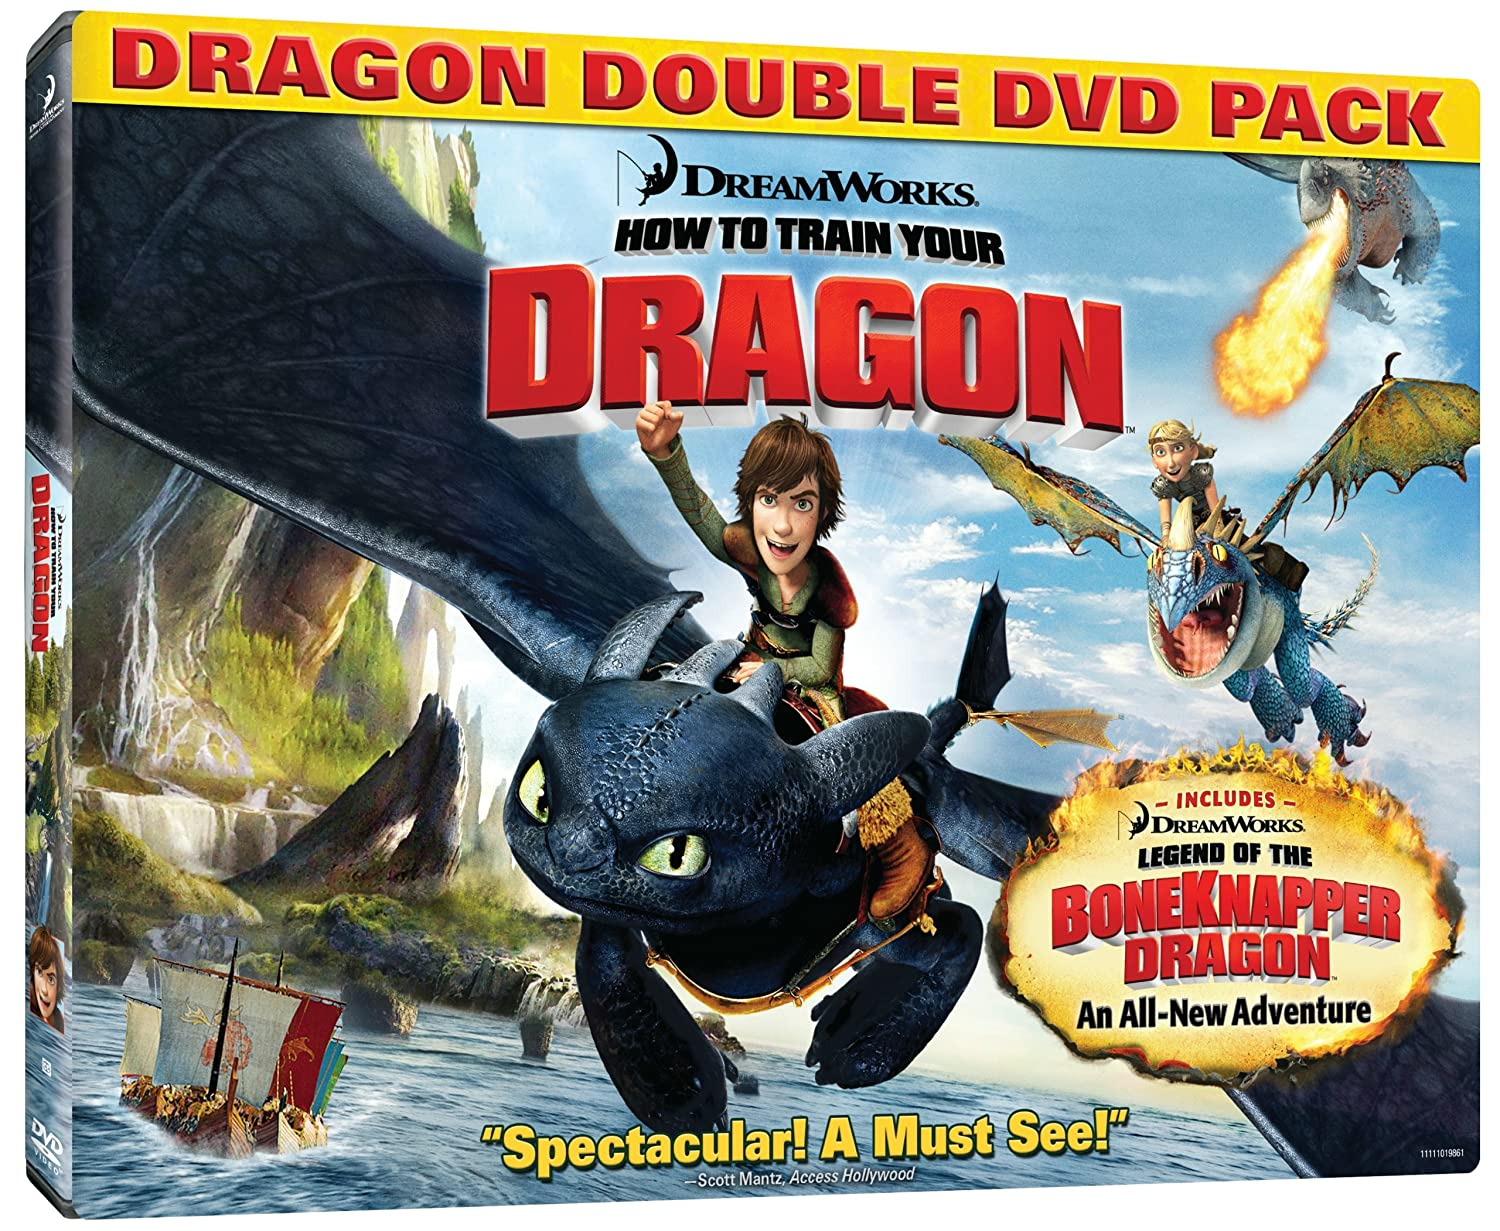 Amazon how to train your dragon double dvd pack jay baruchel amazon how to train your dragon double dvd pack jay baruchel gerard butler dean deblois chris sanders movies tv ccuart Choice Image